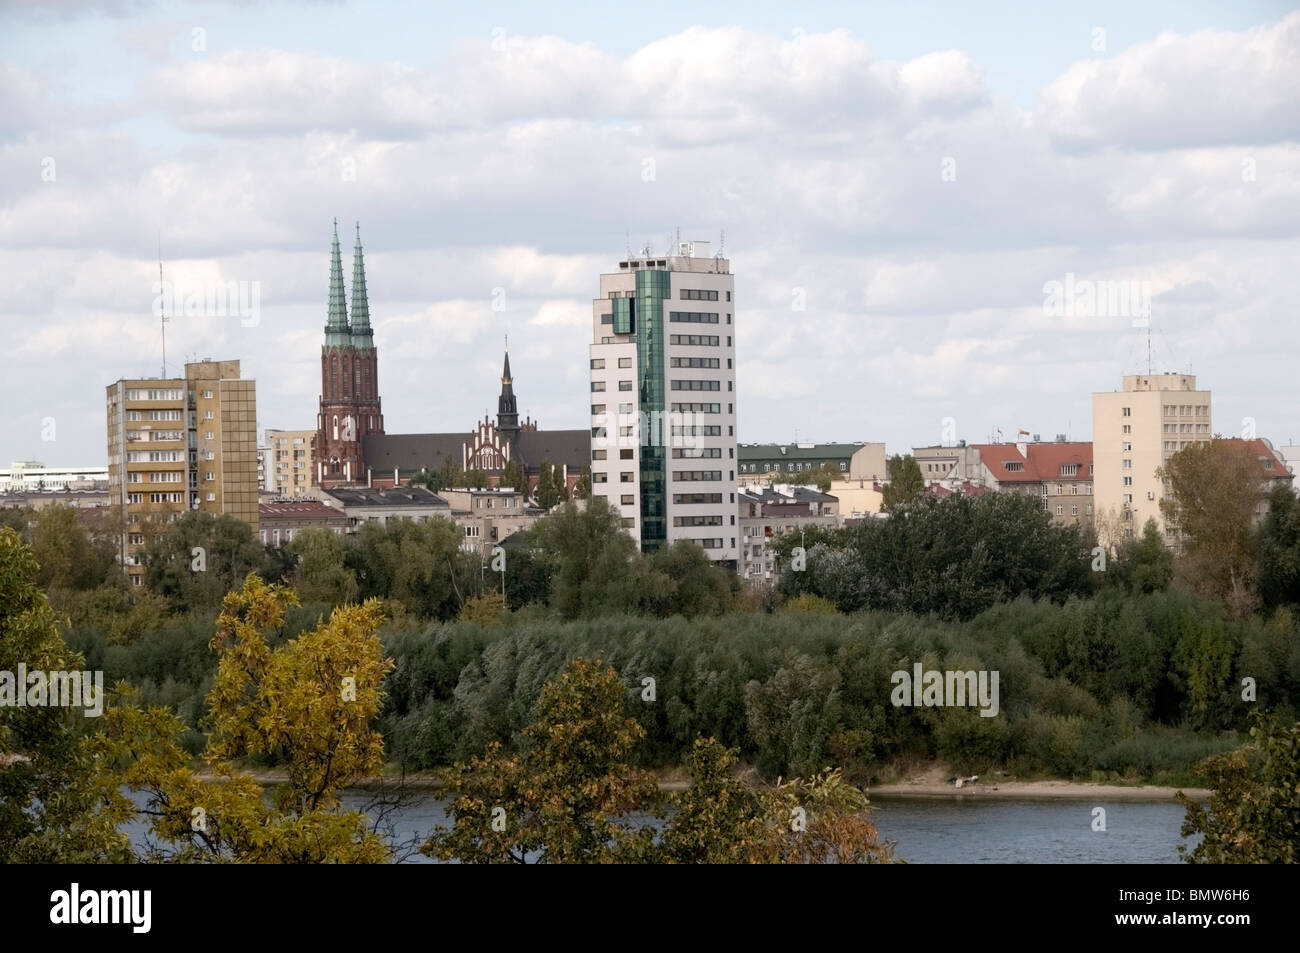 Aerial, panoramic view of the Praski, Praga district skyline of St. Florian's Church by  Vistula, Wisla River, - Stock Image